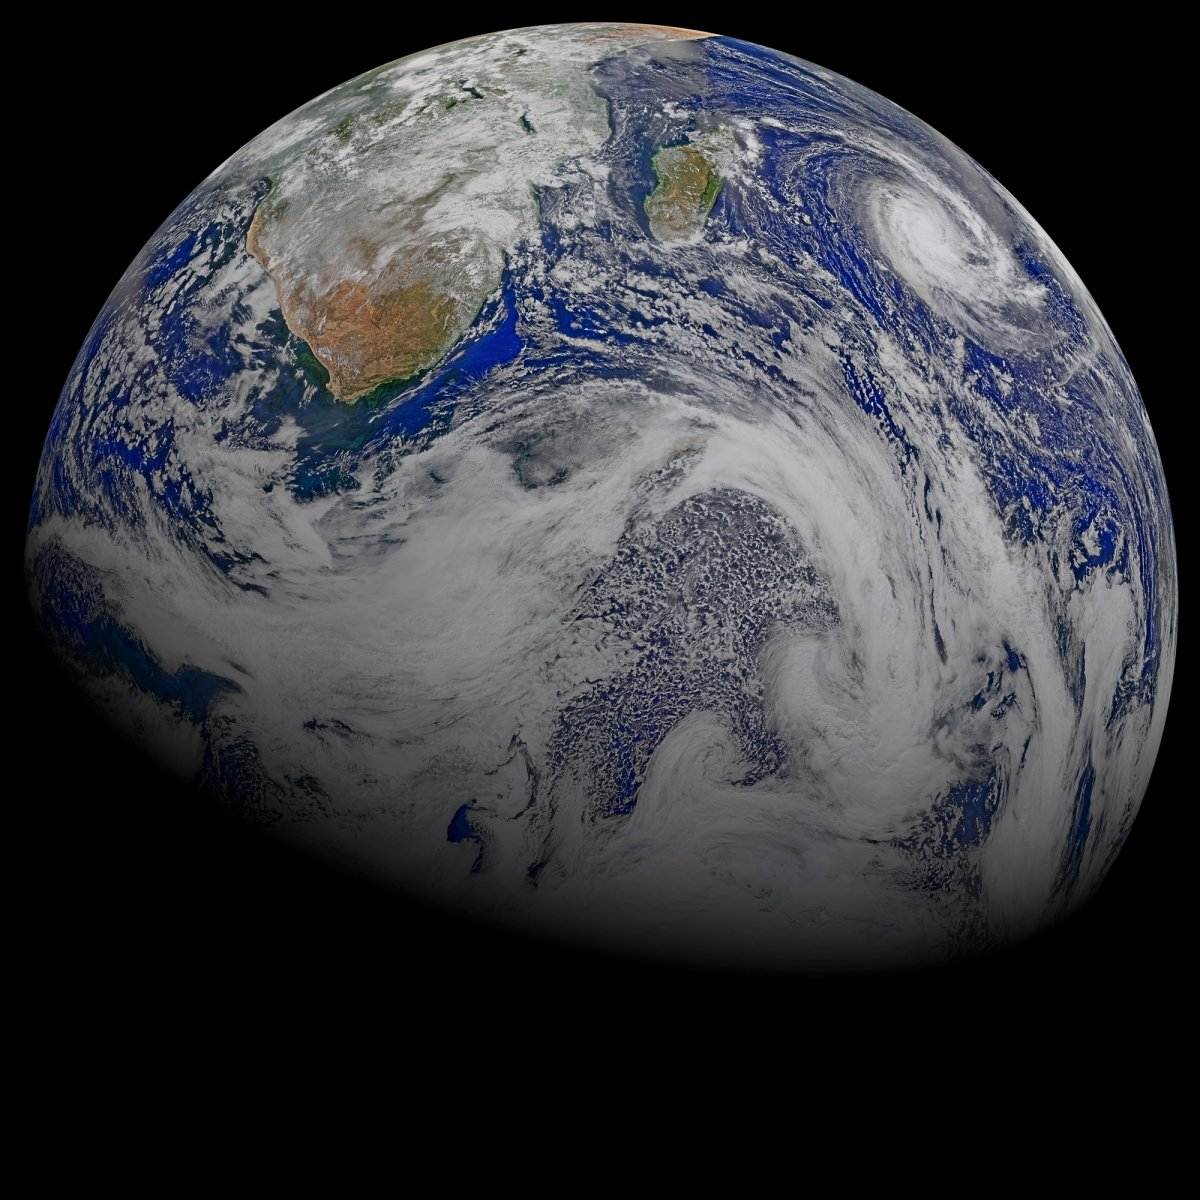 a-few-rare-satellites-launched-by-humanity-enjoy-a-full-view-of-earth-from-thousands-or-even-a-million-miles-away